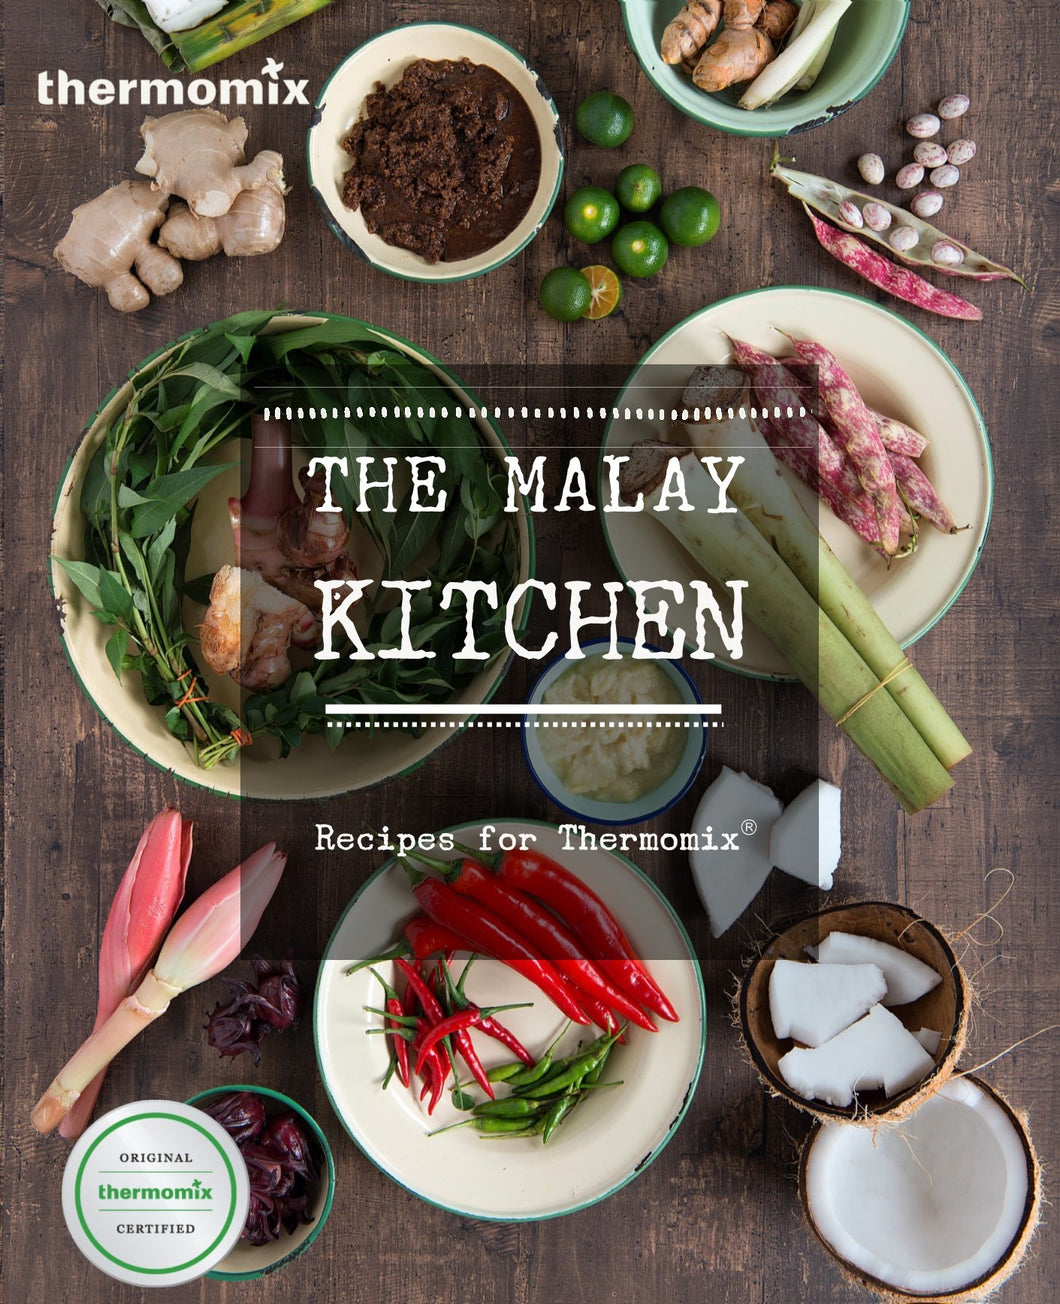 The malay kitchen recipes for thermomix tm5 the official thermomix the malay kitchen recipes for thermomix tm5 forumfinder Image collections